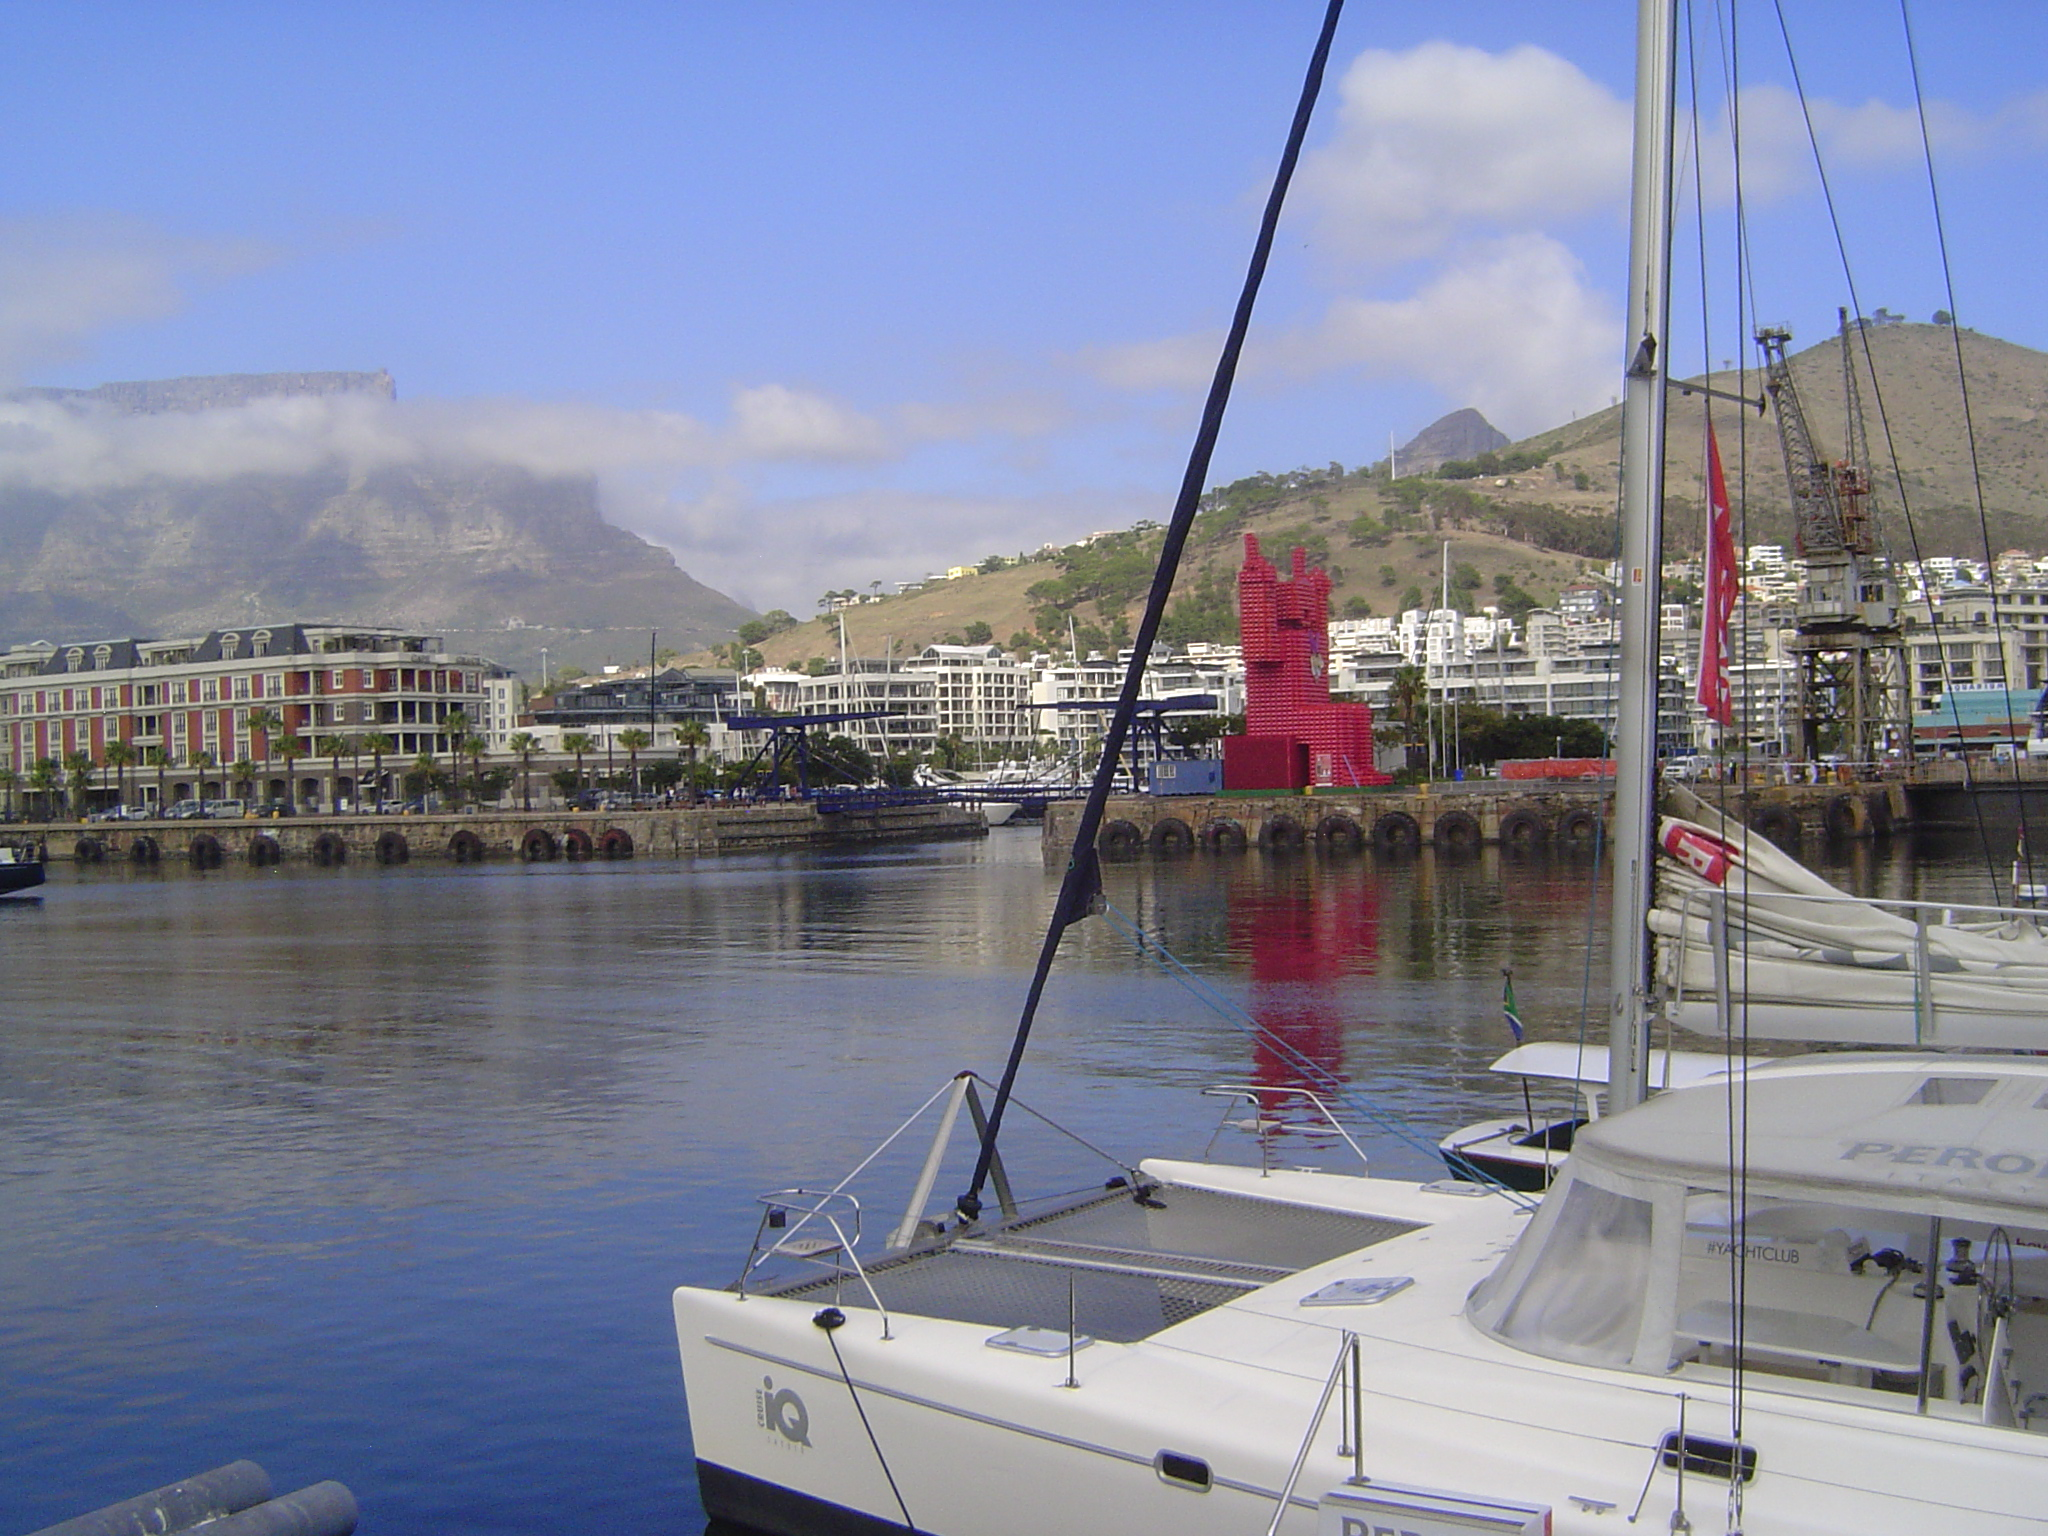 South Africa: V&A Waterfront